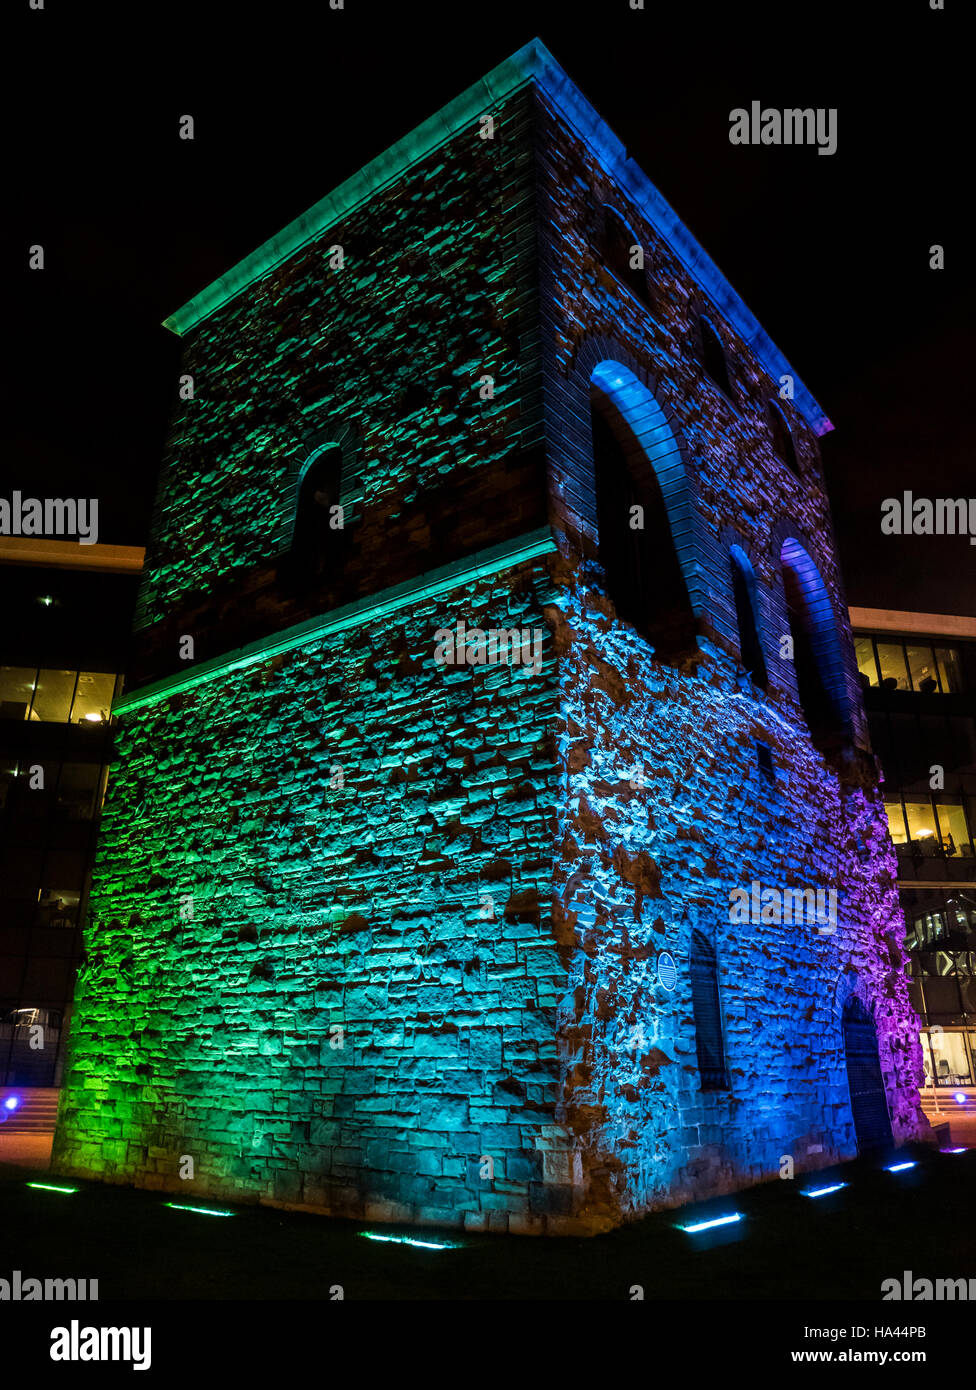 The stunningly lit old Wagon Lifting Tower, Wellington Place, Leeds, on a dark autumn evening - Stock Image